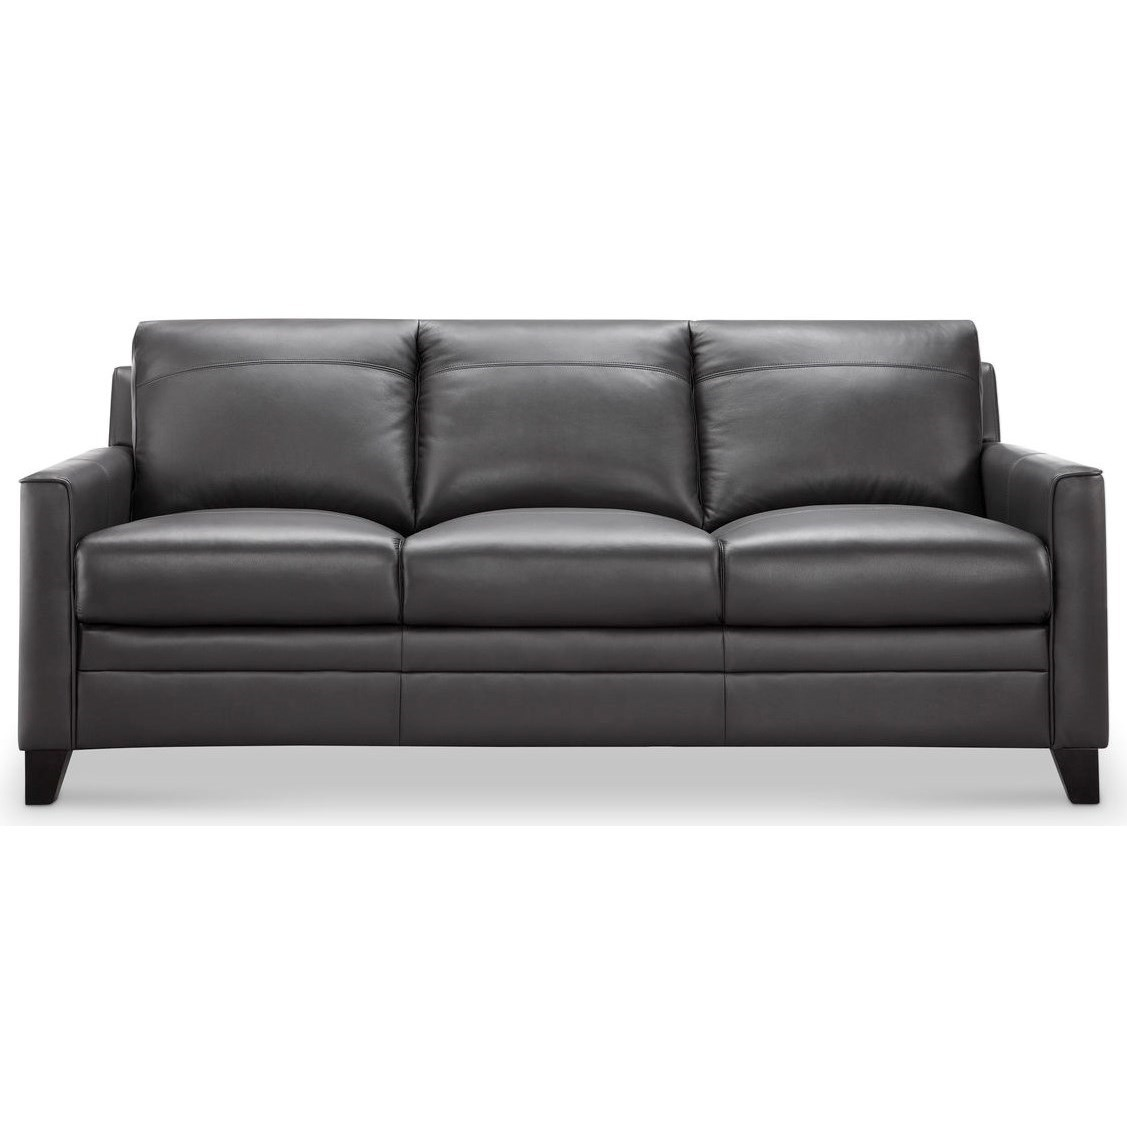 Fletcher Leather Sofa by Leather Italia USA at Corner Furniture